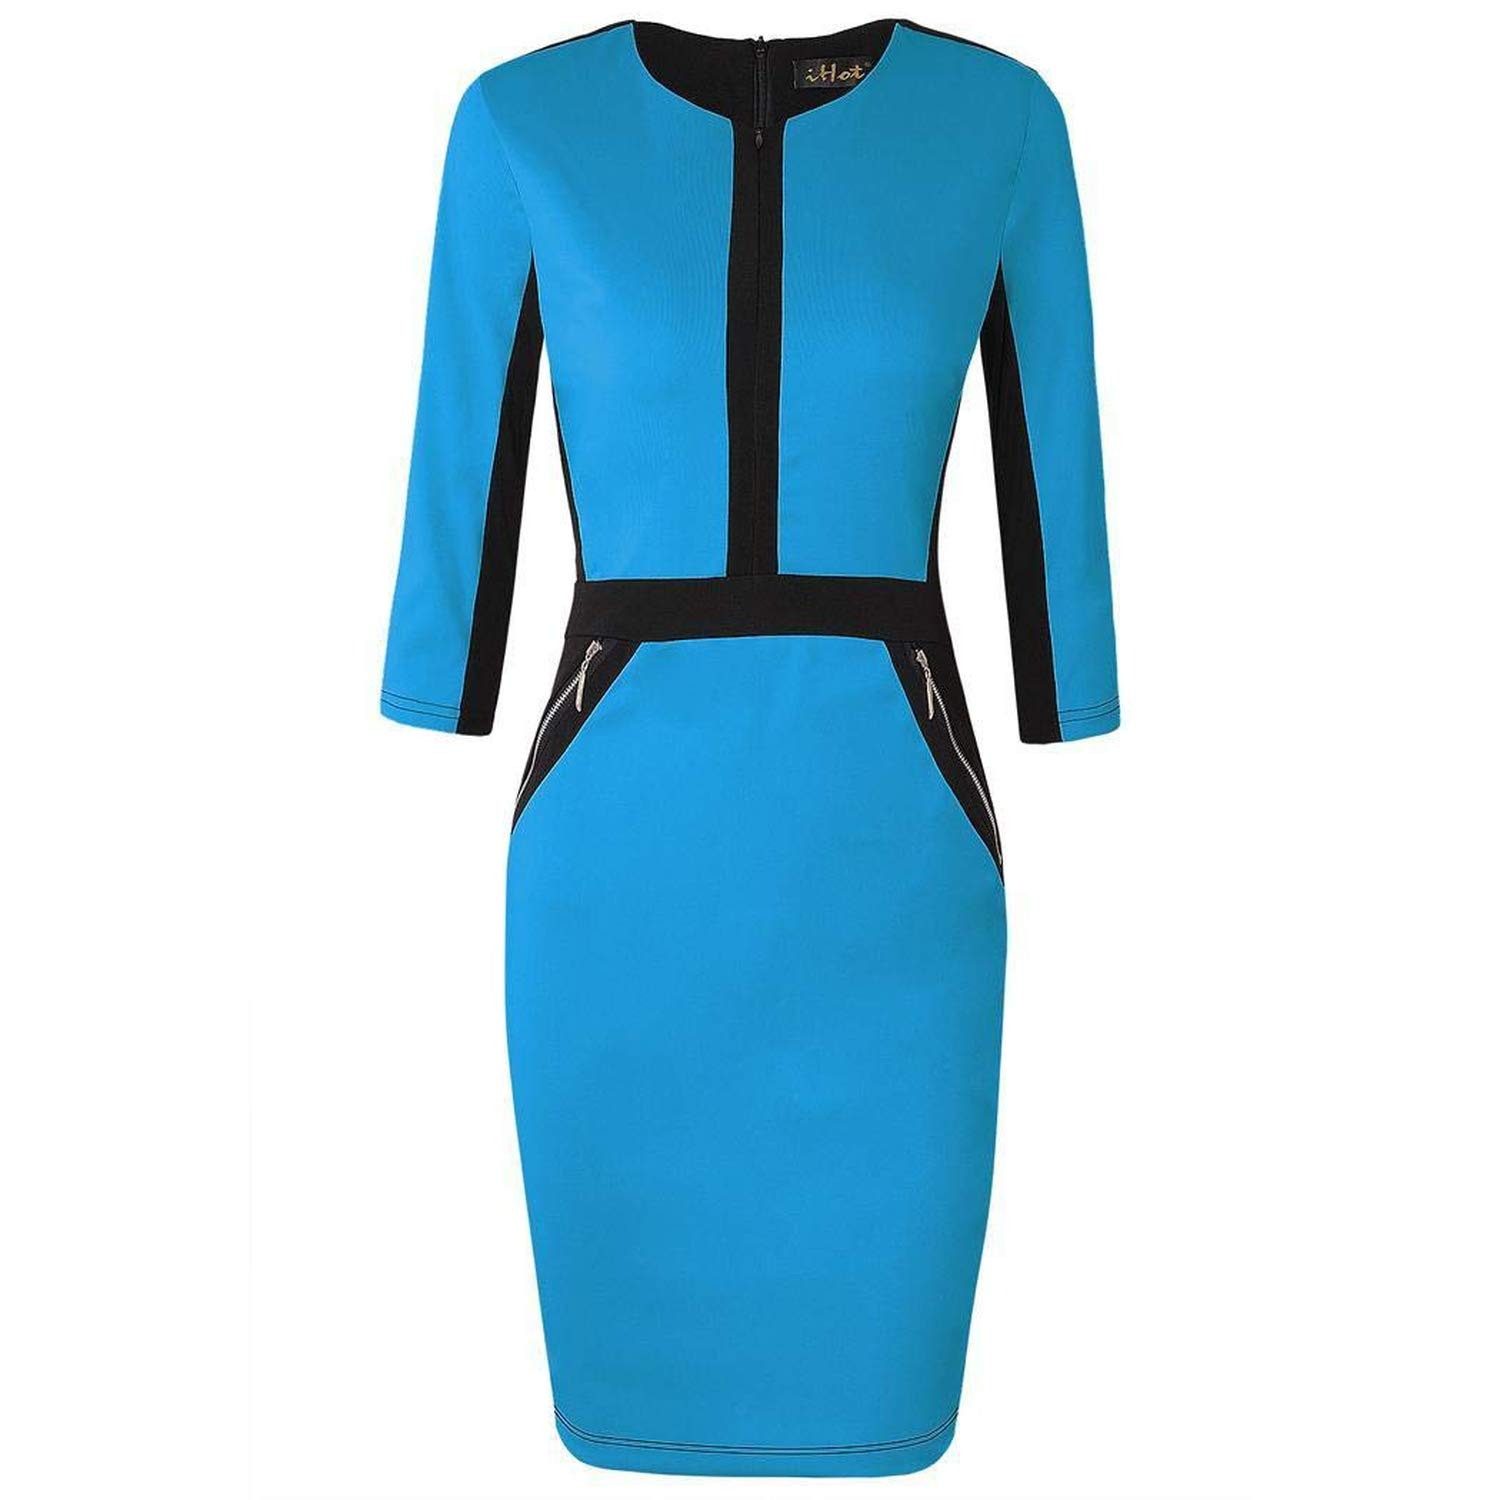 bluee Yksth Women Fashion Round Neck Long Sleeve Contrast color Patchwork Dress Dresses